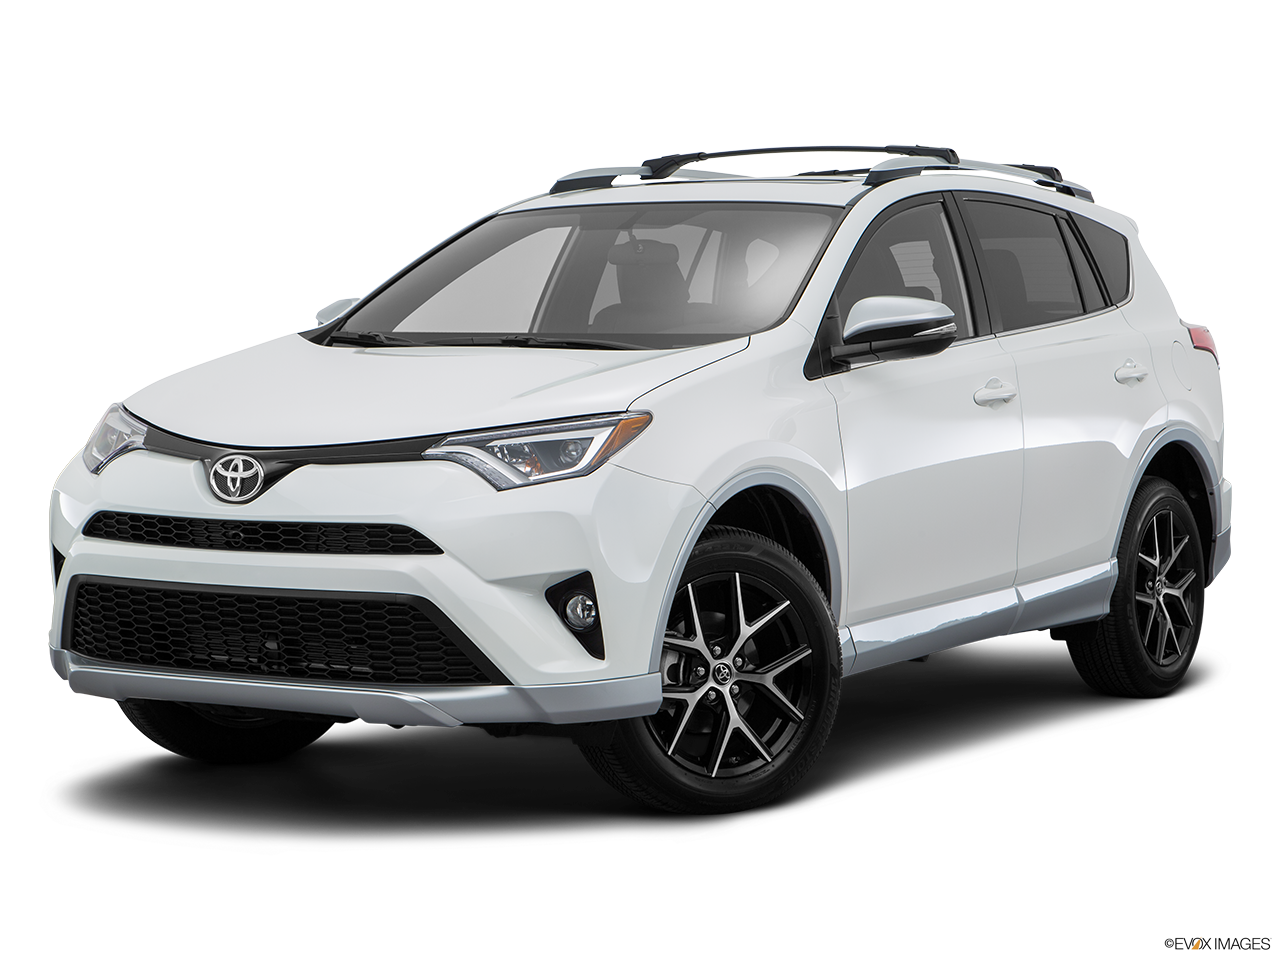 Test Drive A 2016 Toyota RAV4 at Moss Bros Toyota of Moreno Valley in Riverside